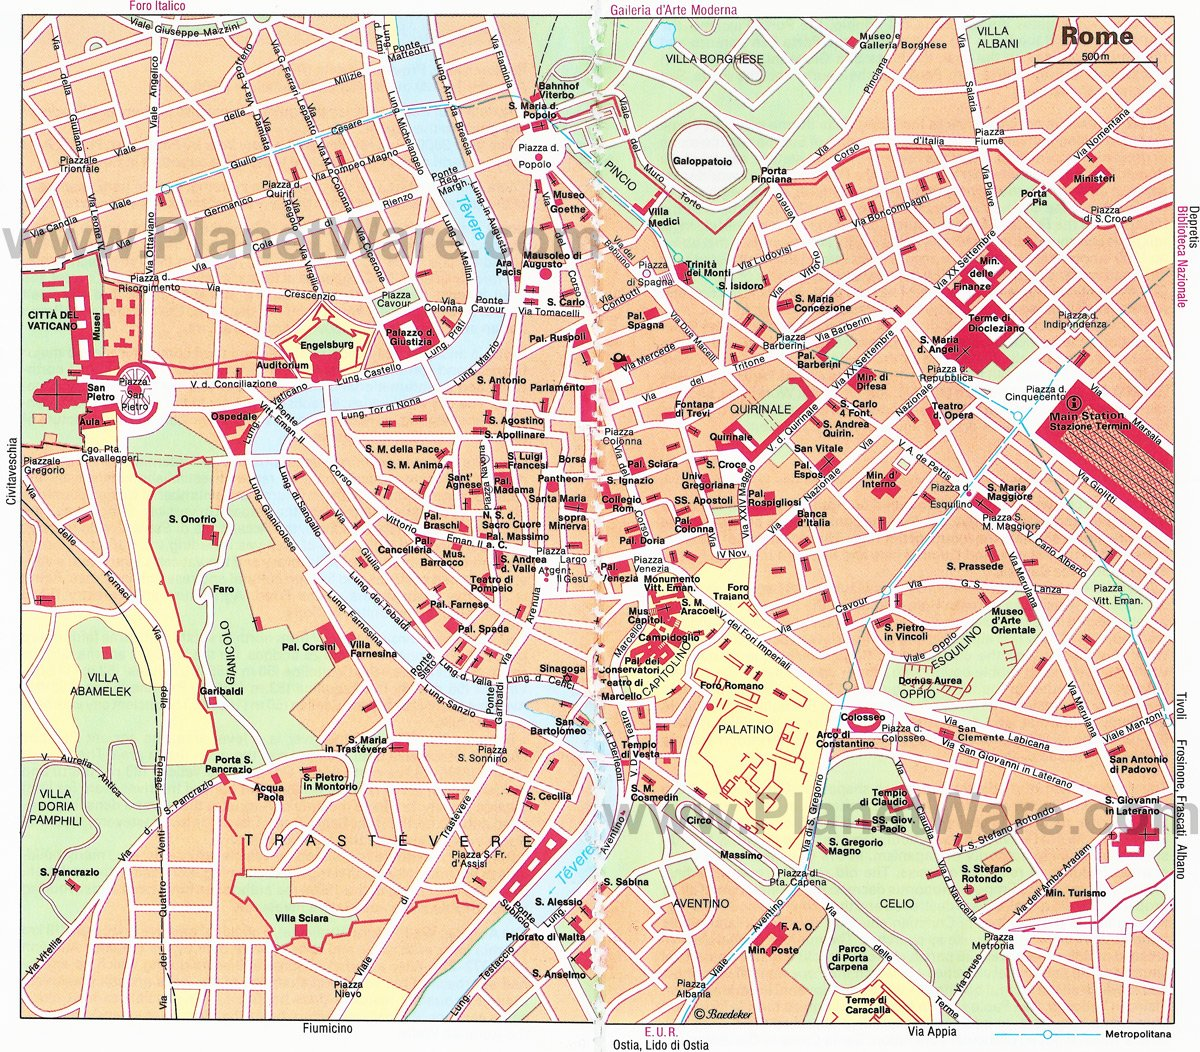 14 TopRated Tourist Attractions in Rome – Map Of Rome Showing Tourist Attractions